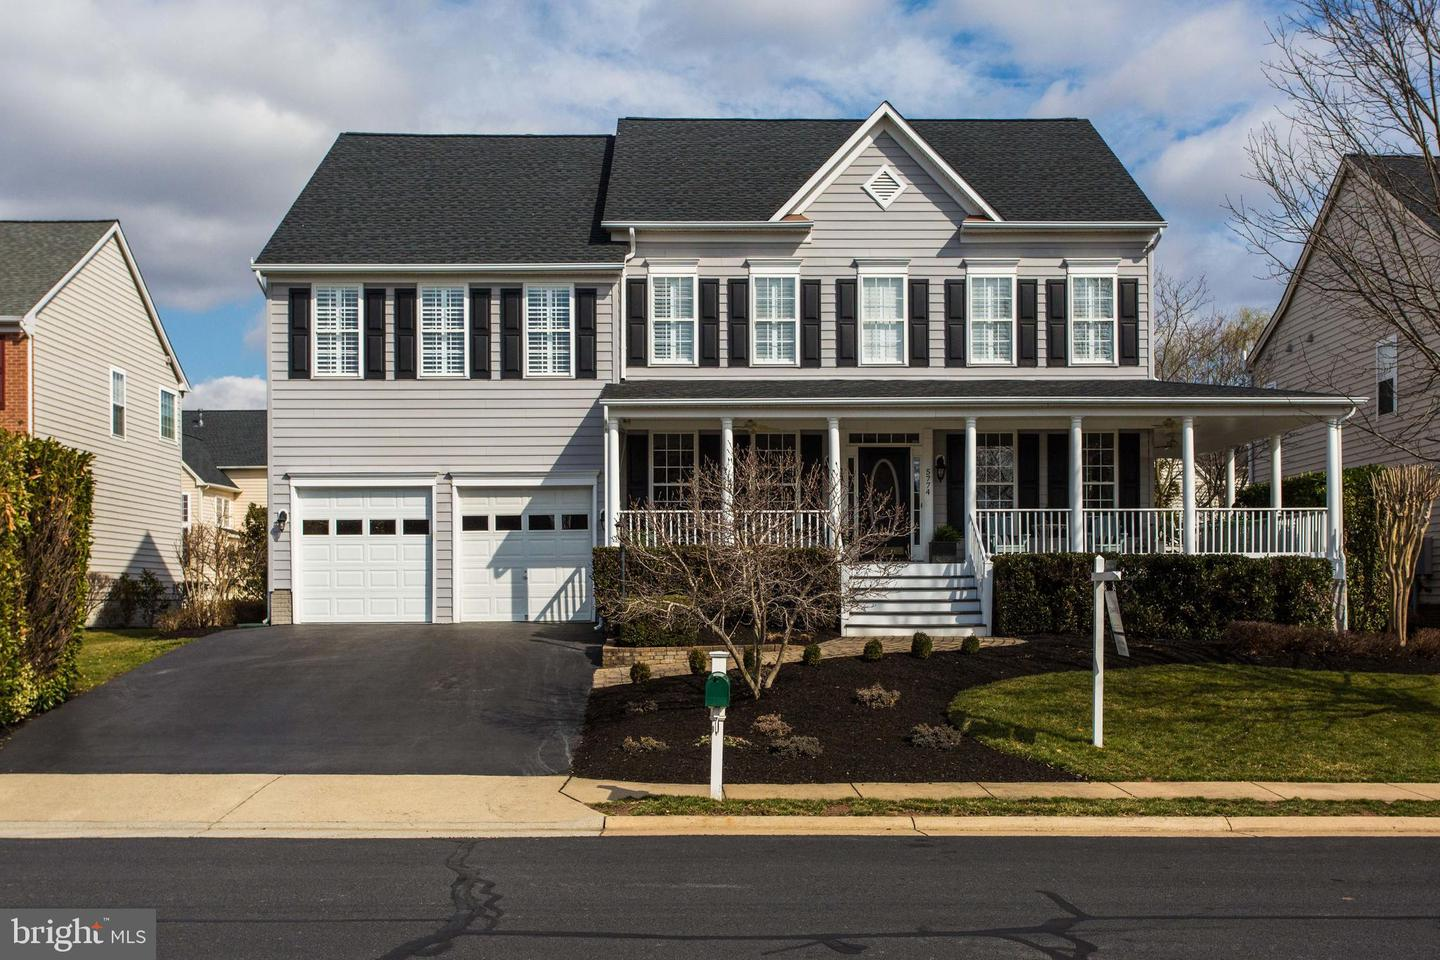 5774 COACHVIEW COURT, HAYMARKET, Virginia